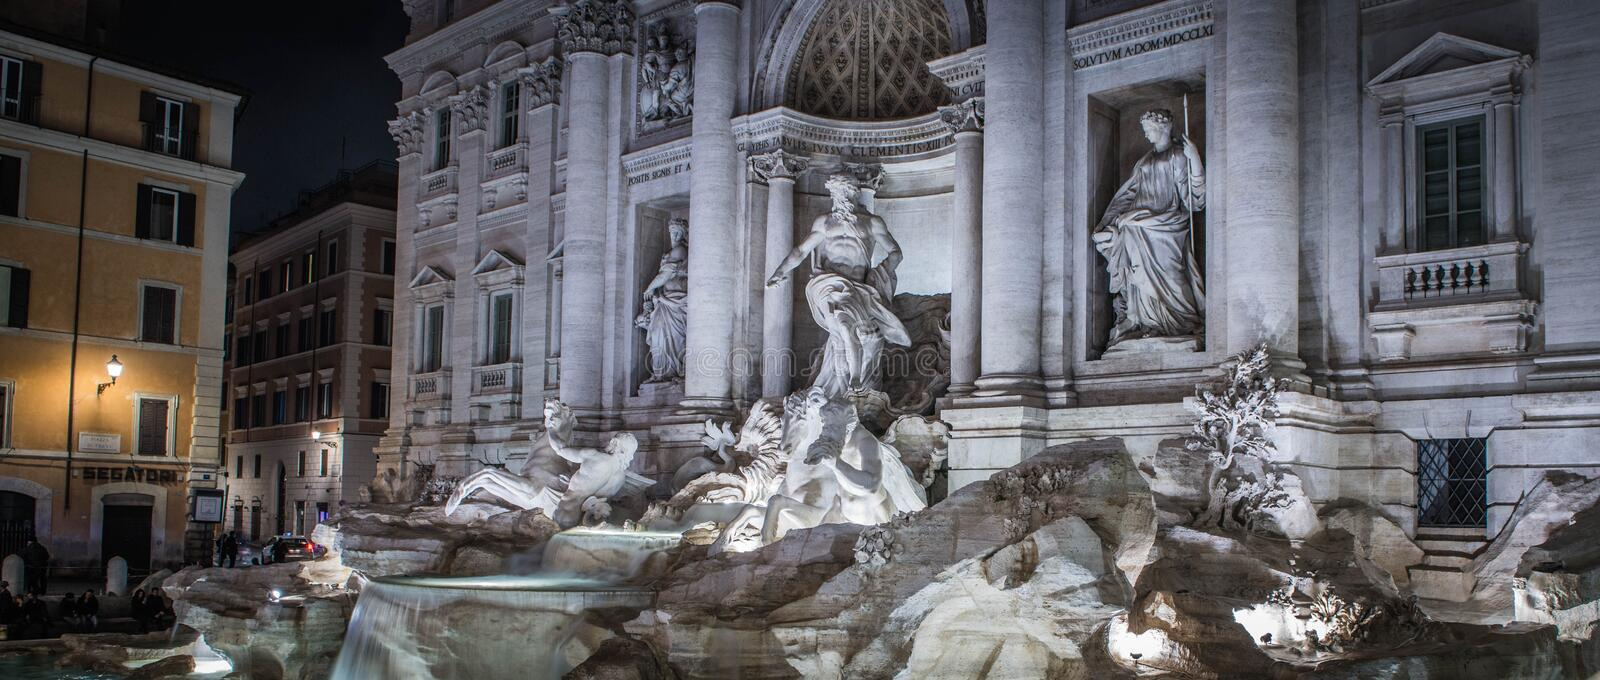 The Trevi Fountain stock photography